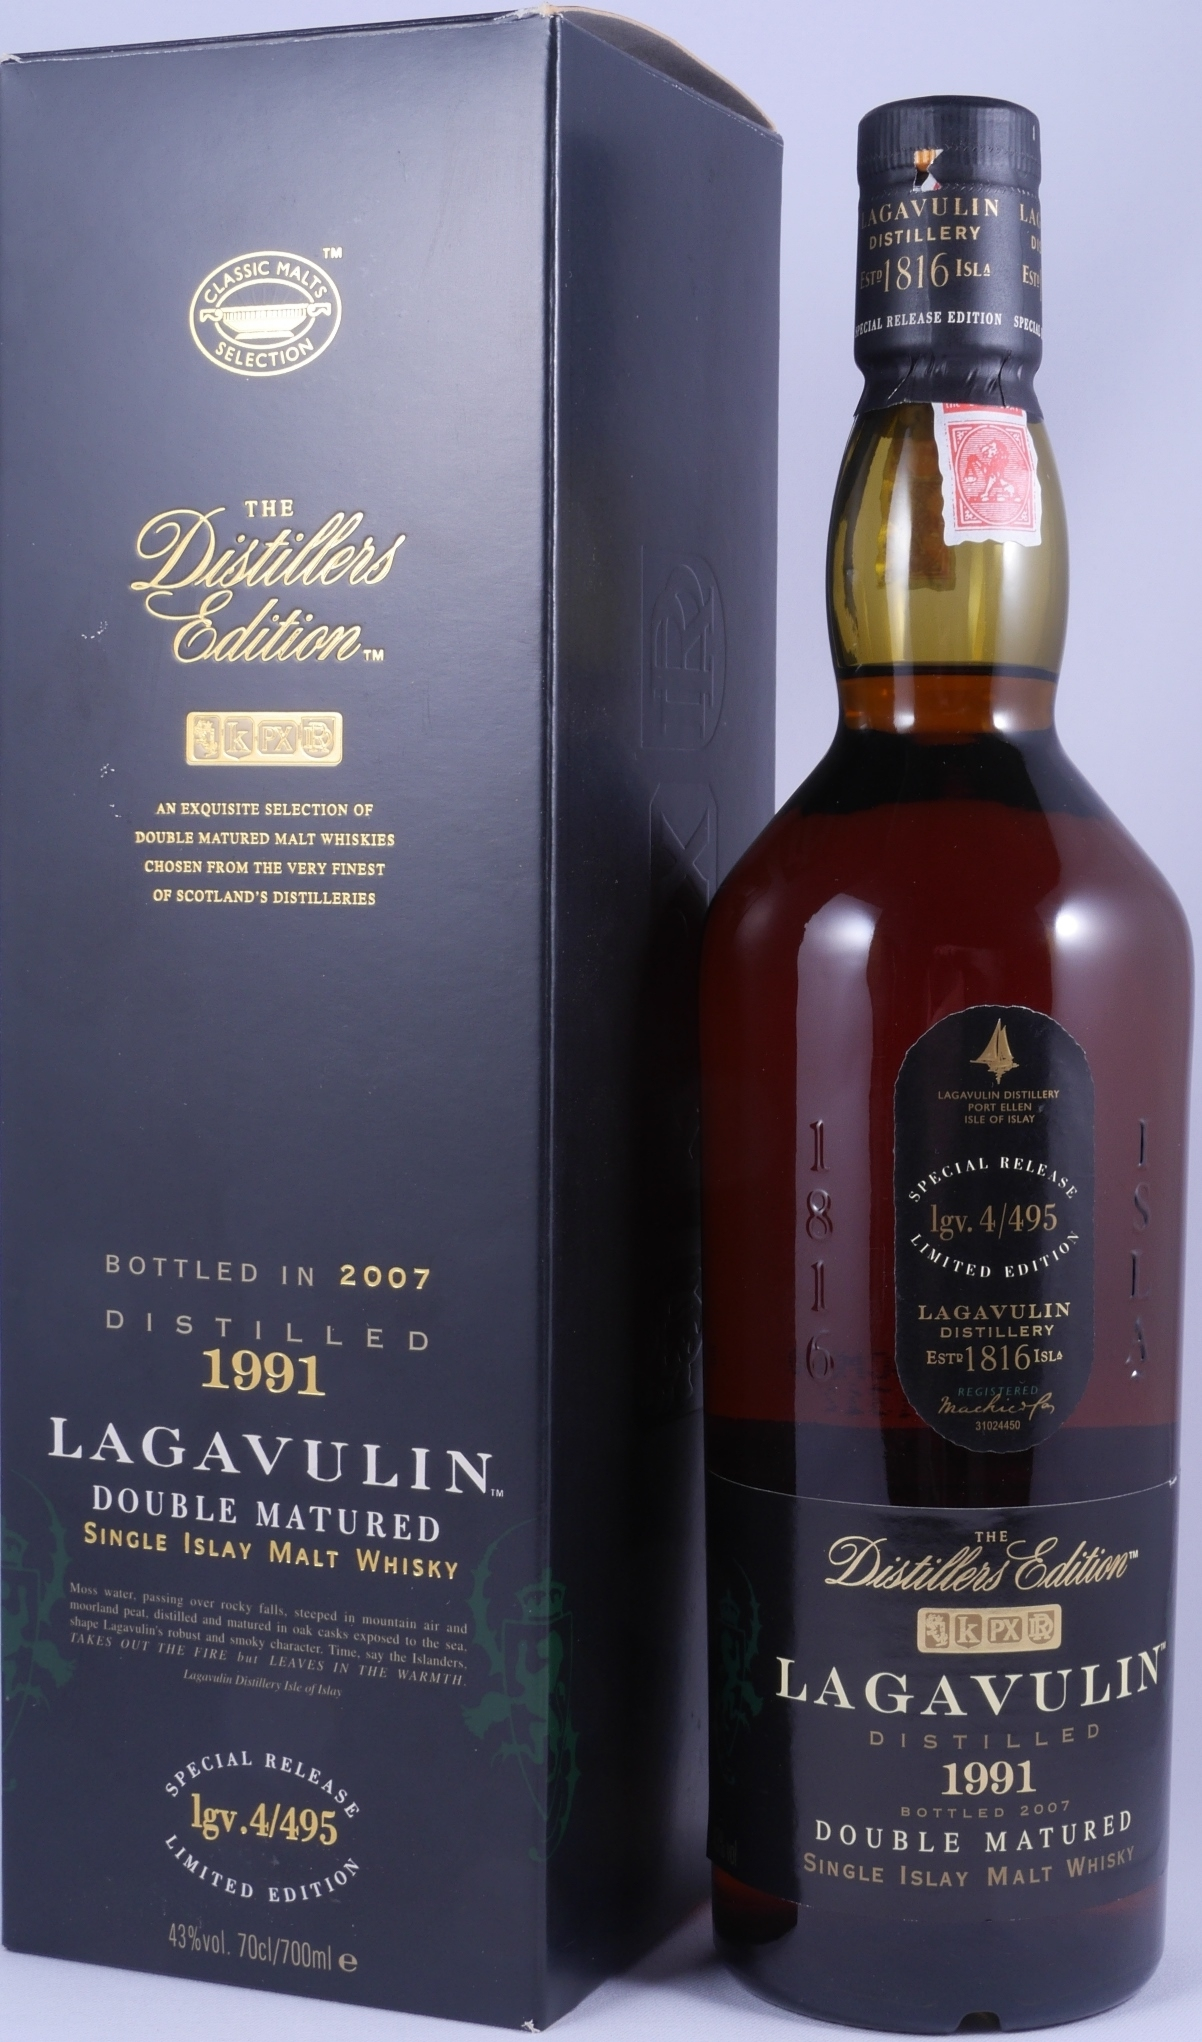 Lagavulin double matured